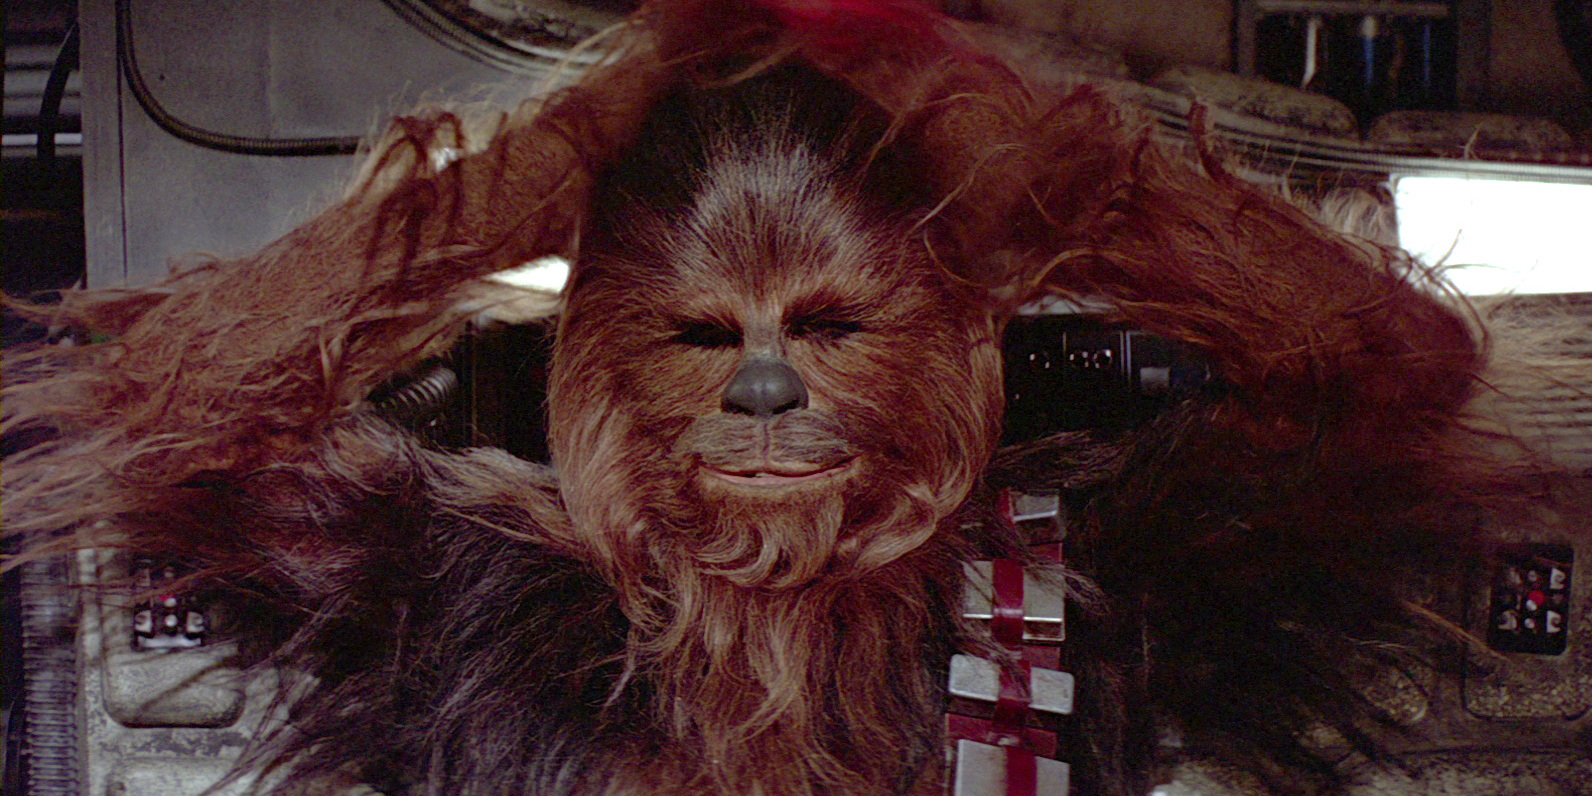 Things We Saw Today: Dress Your Chewbaccas in Lederhosen and Culottes